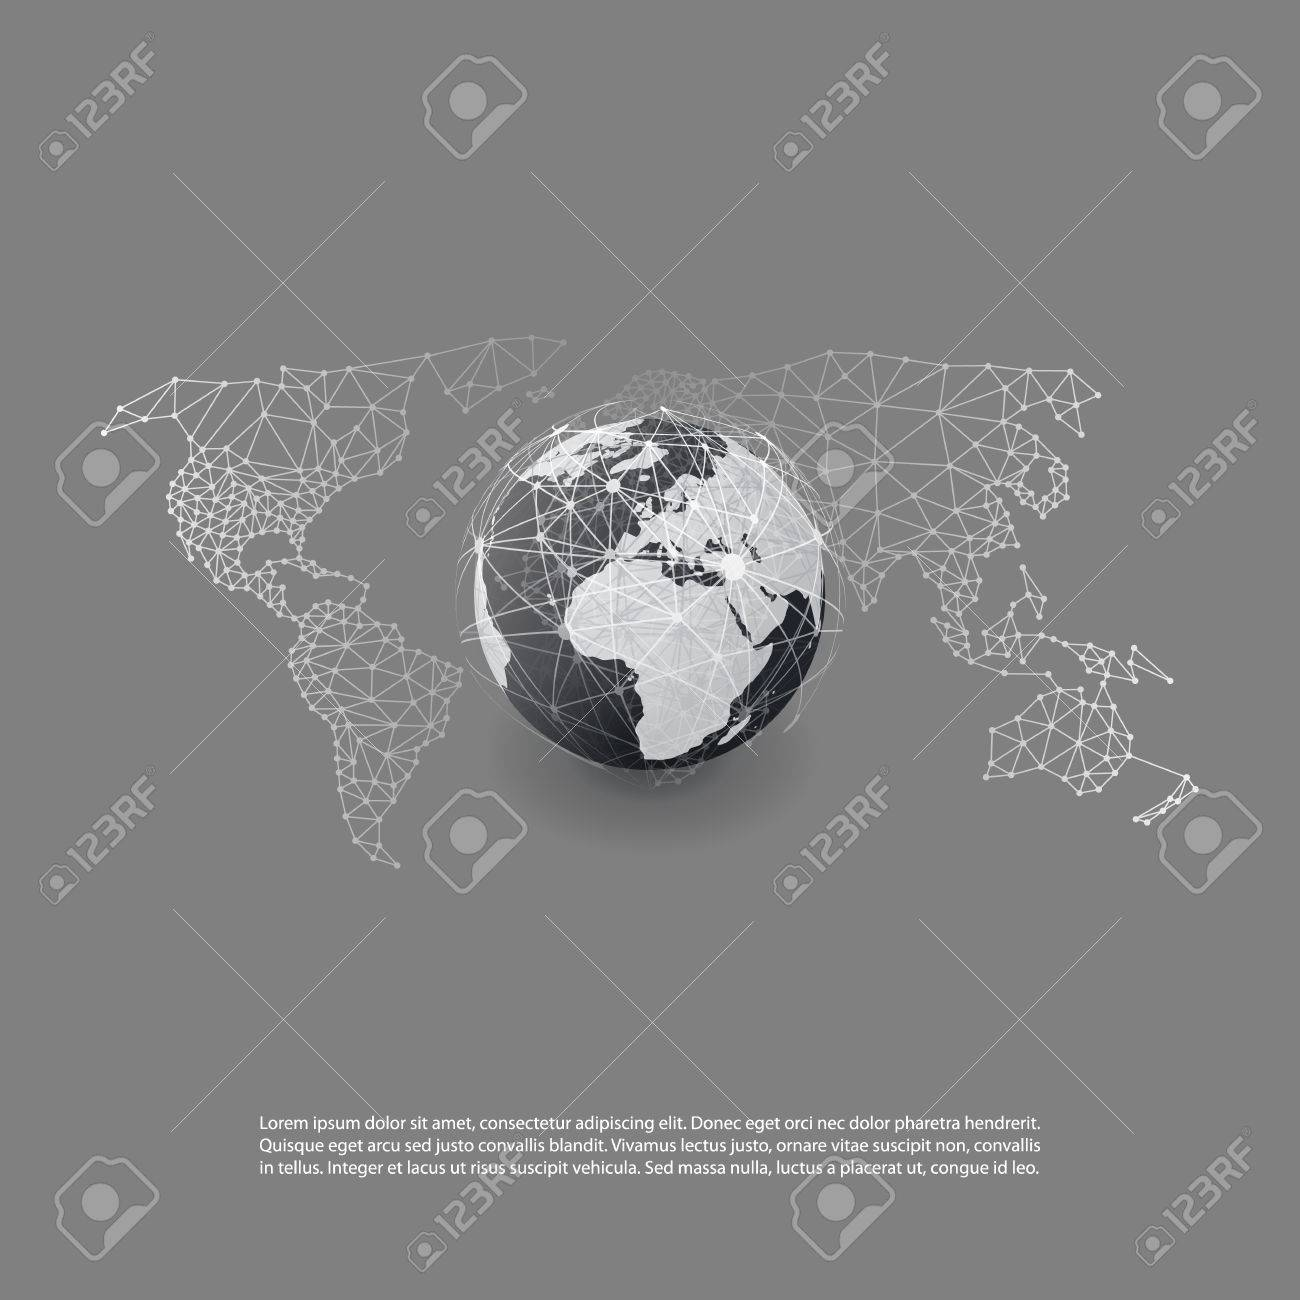 Cloud computing and global networks world map abstract global cloud computing and global networks world map abstract global digital network connections technology gumiabroncs Image collections